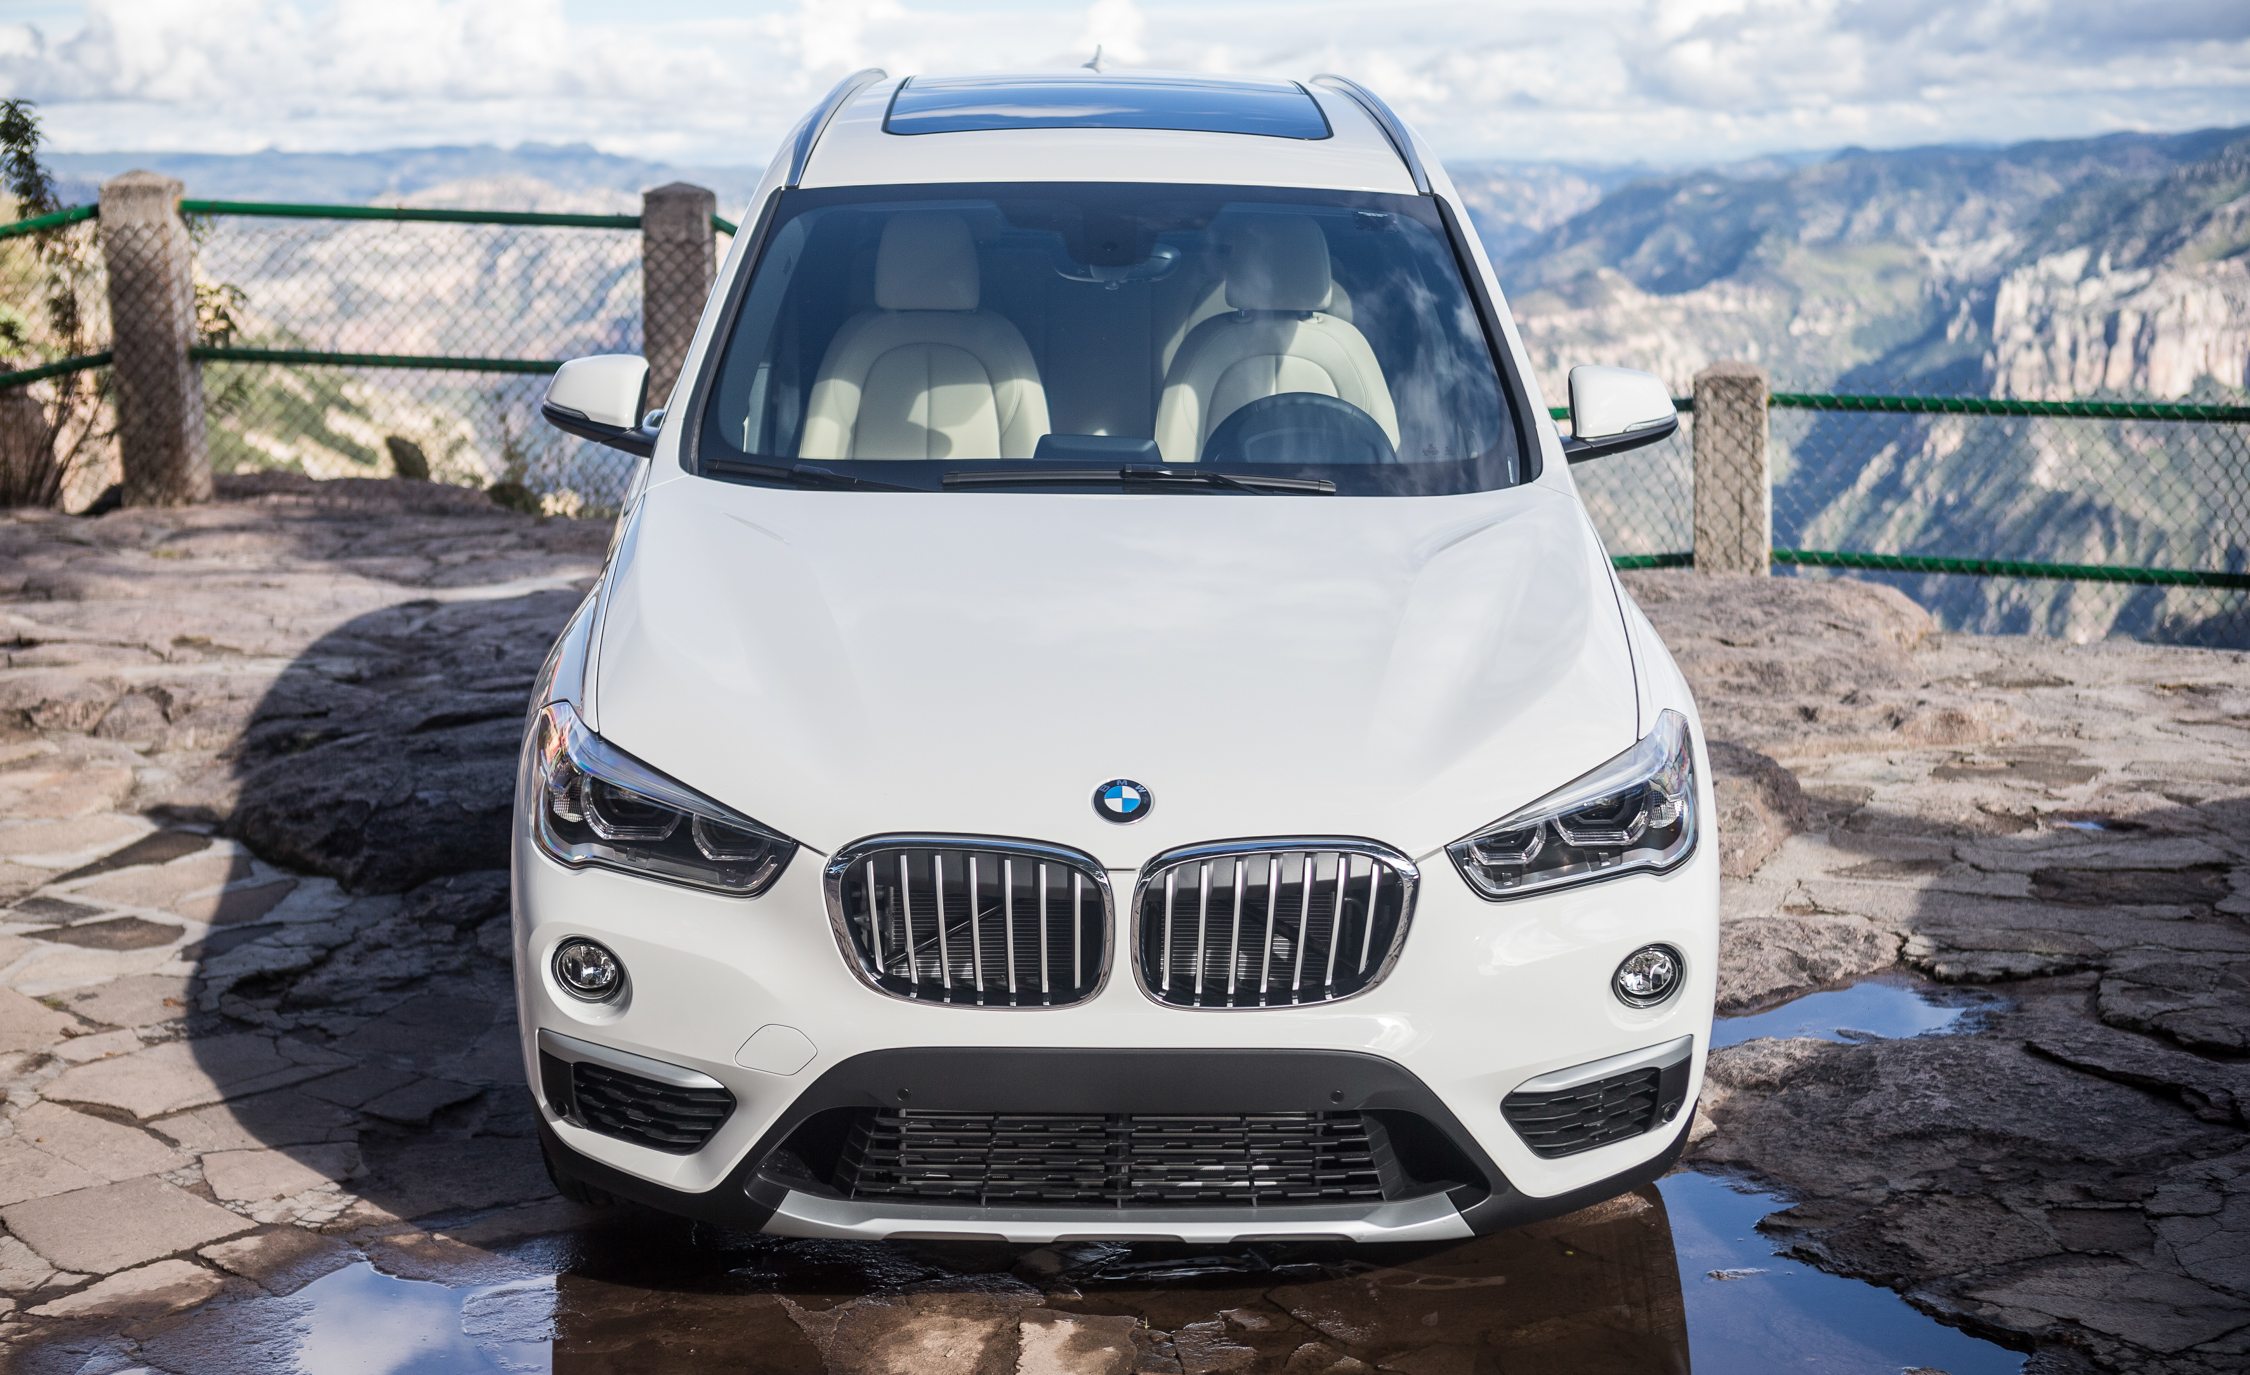 2016 BMW X1 Exterior White Metallic Front End (View 35 of 36)